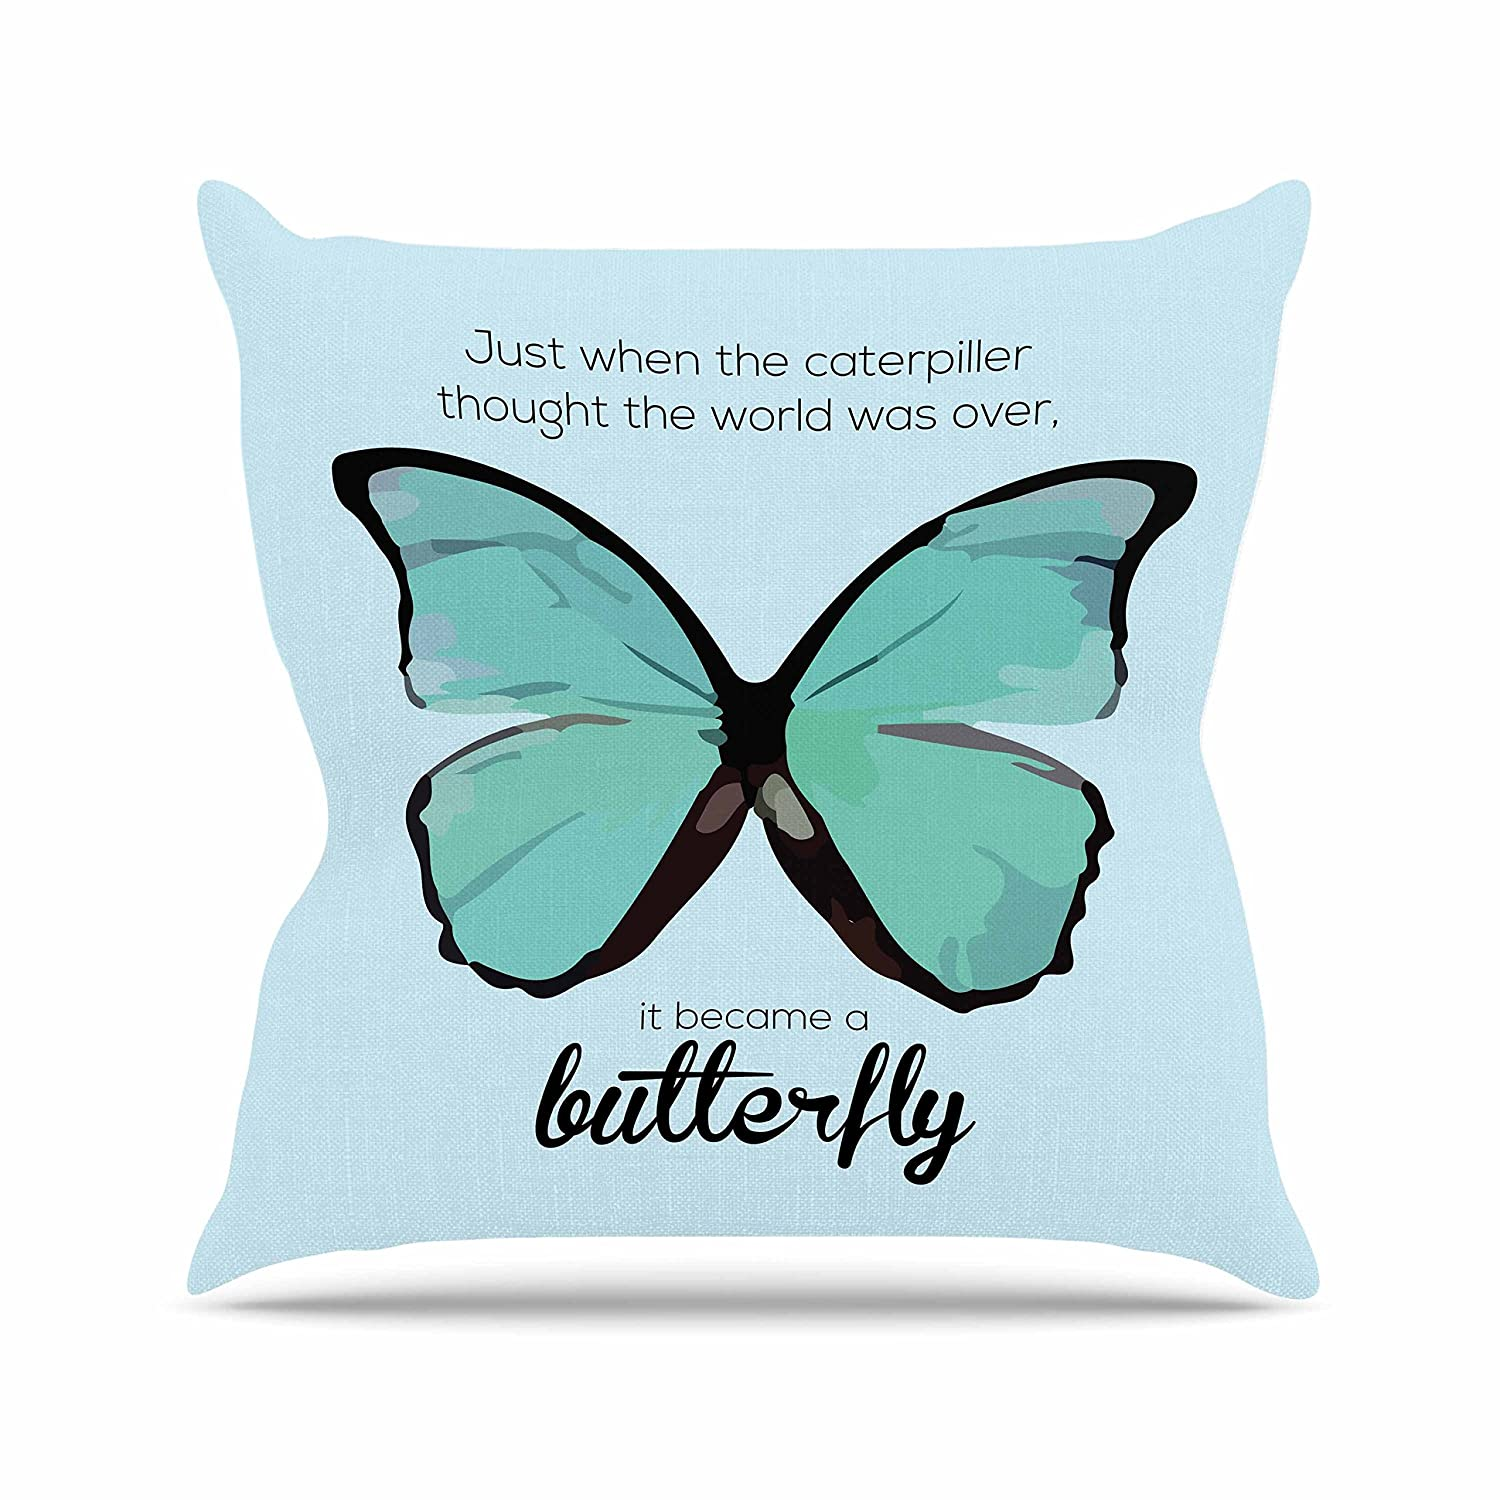 Kess InHouse NL Designs Blue Butterfly Blue Quote Throw Pillow, 18 by 18'